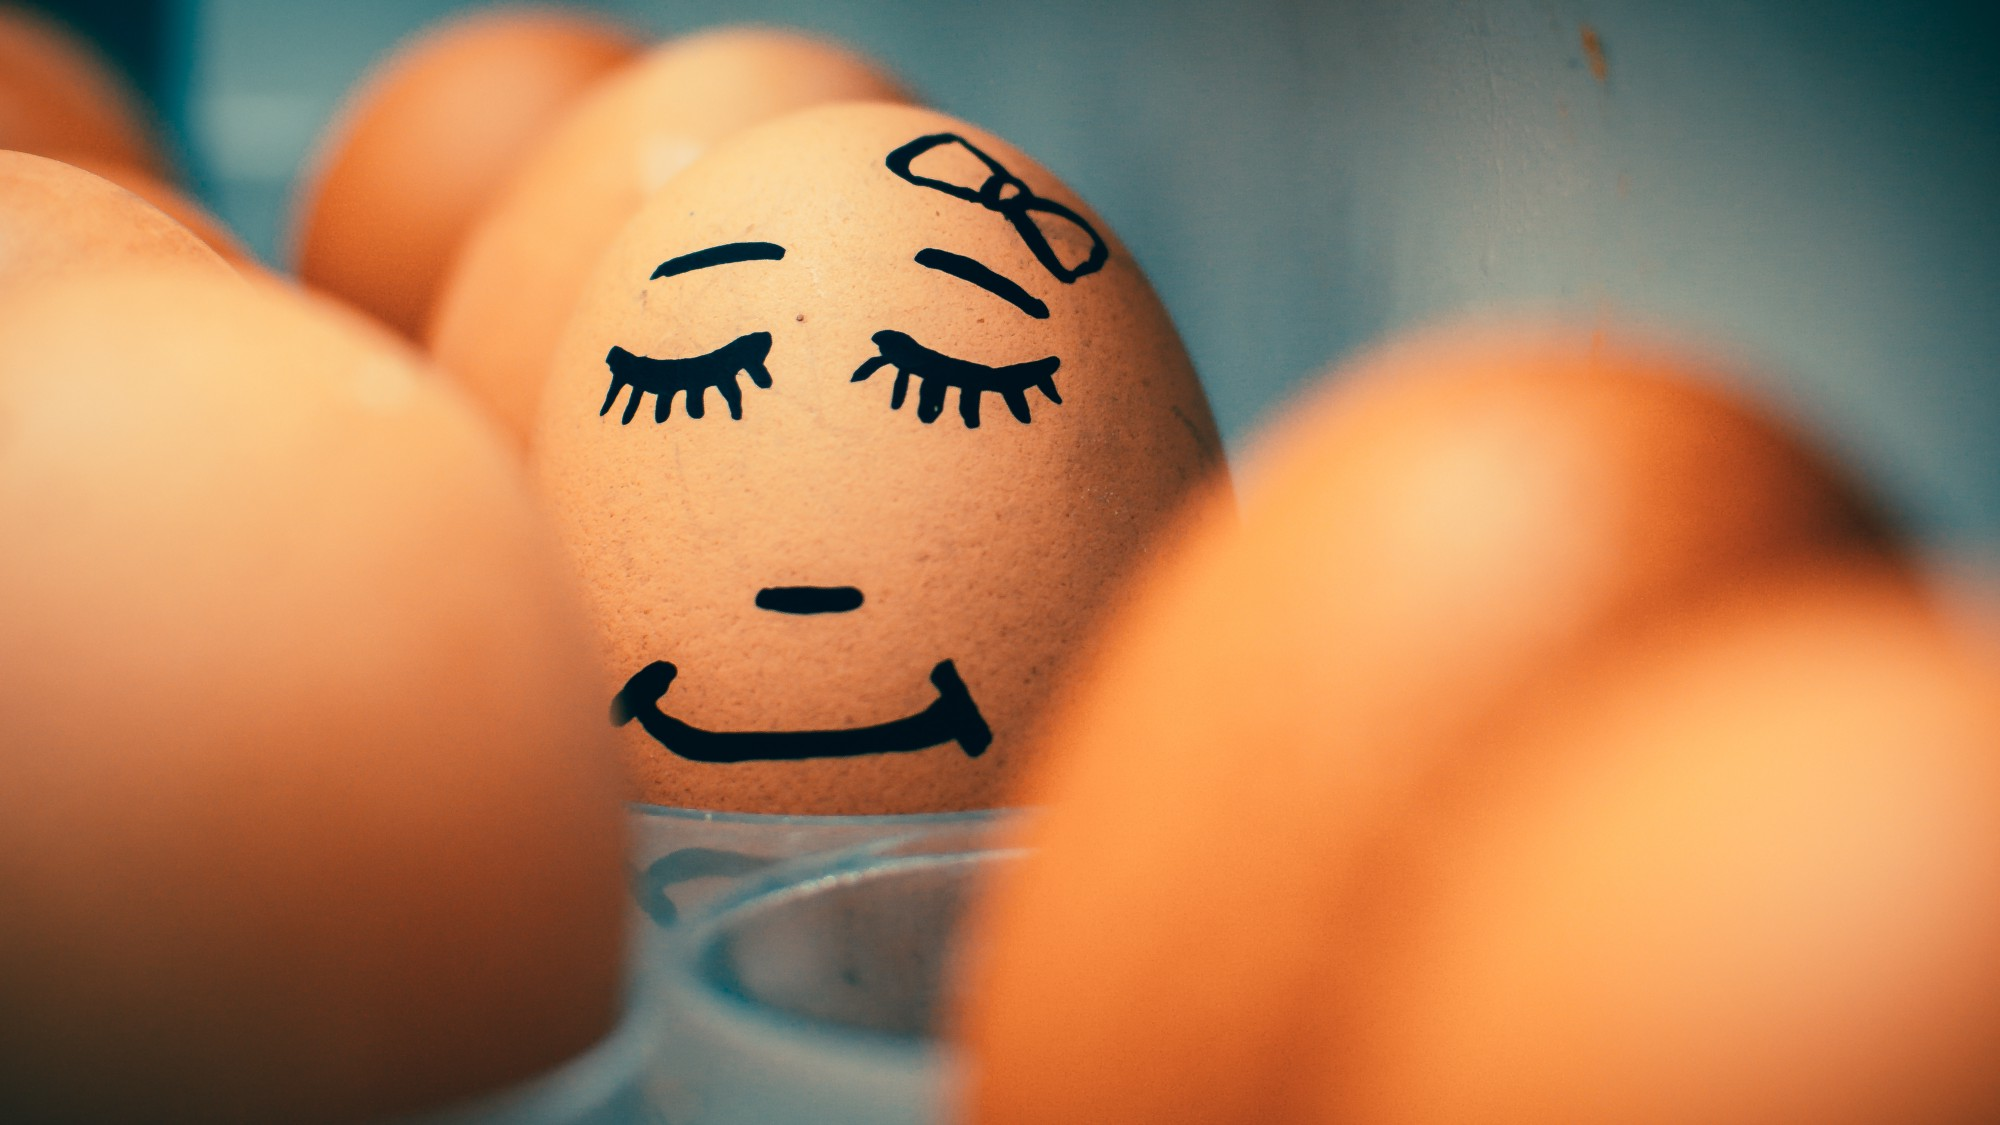 An egg looking happy as it sleeps soundly